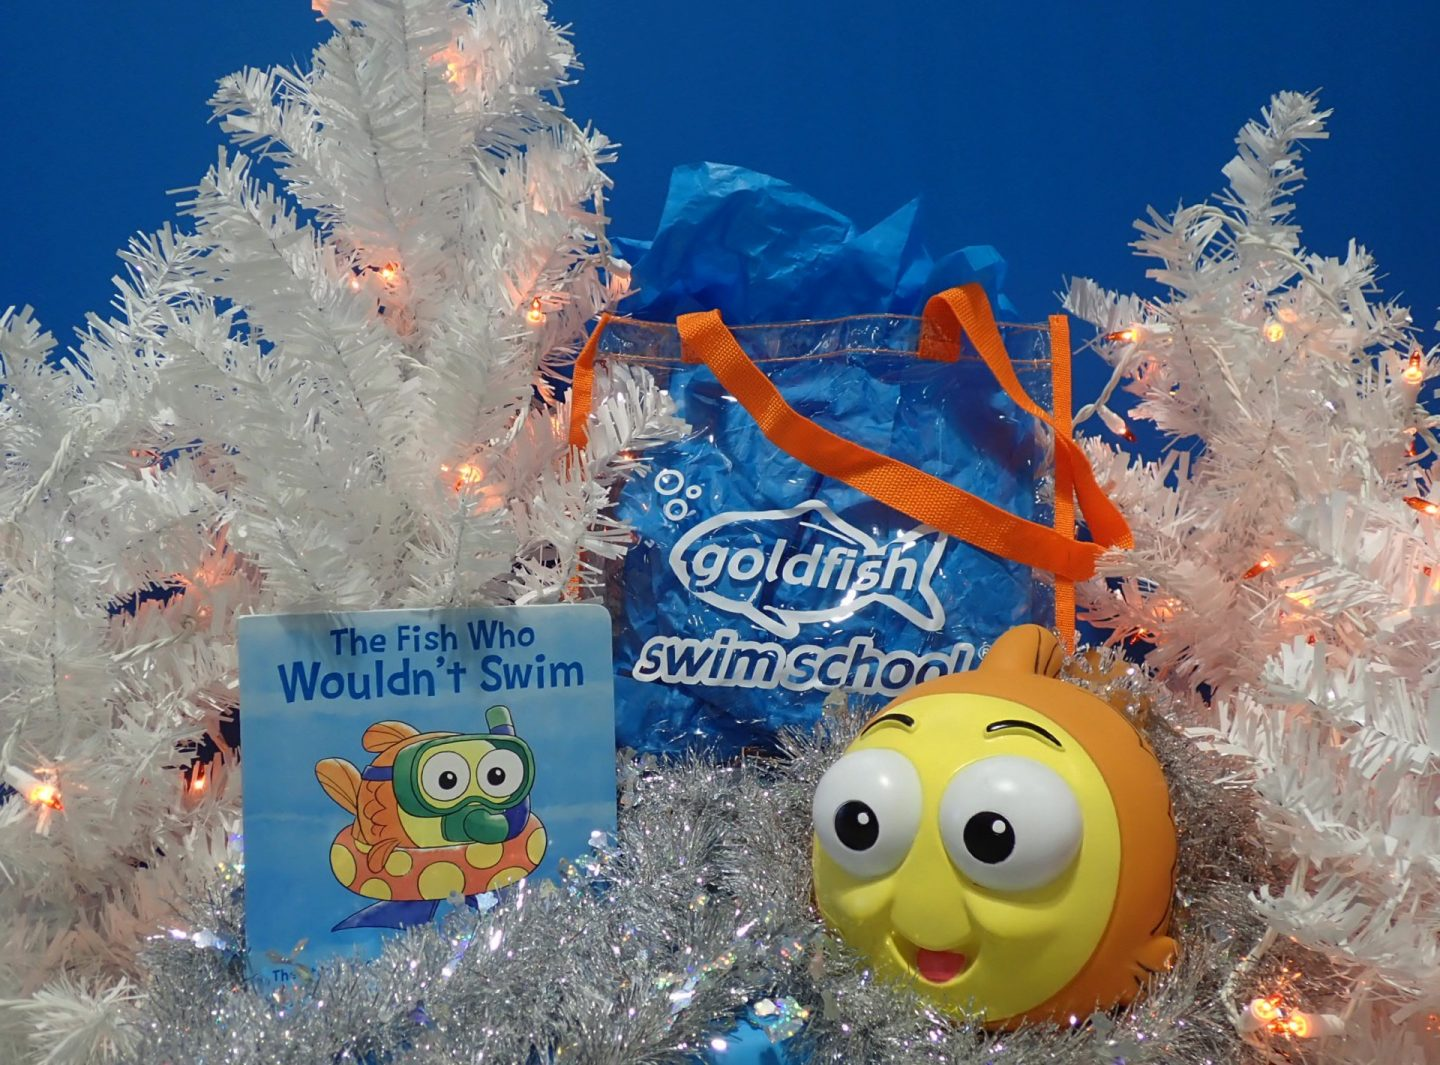 Goldfish Swim School holiday retail package